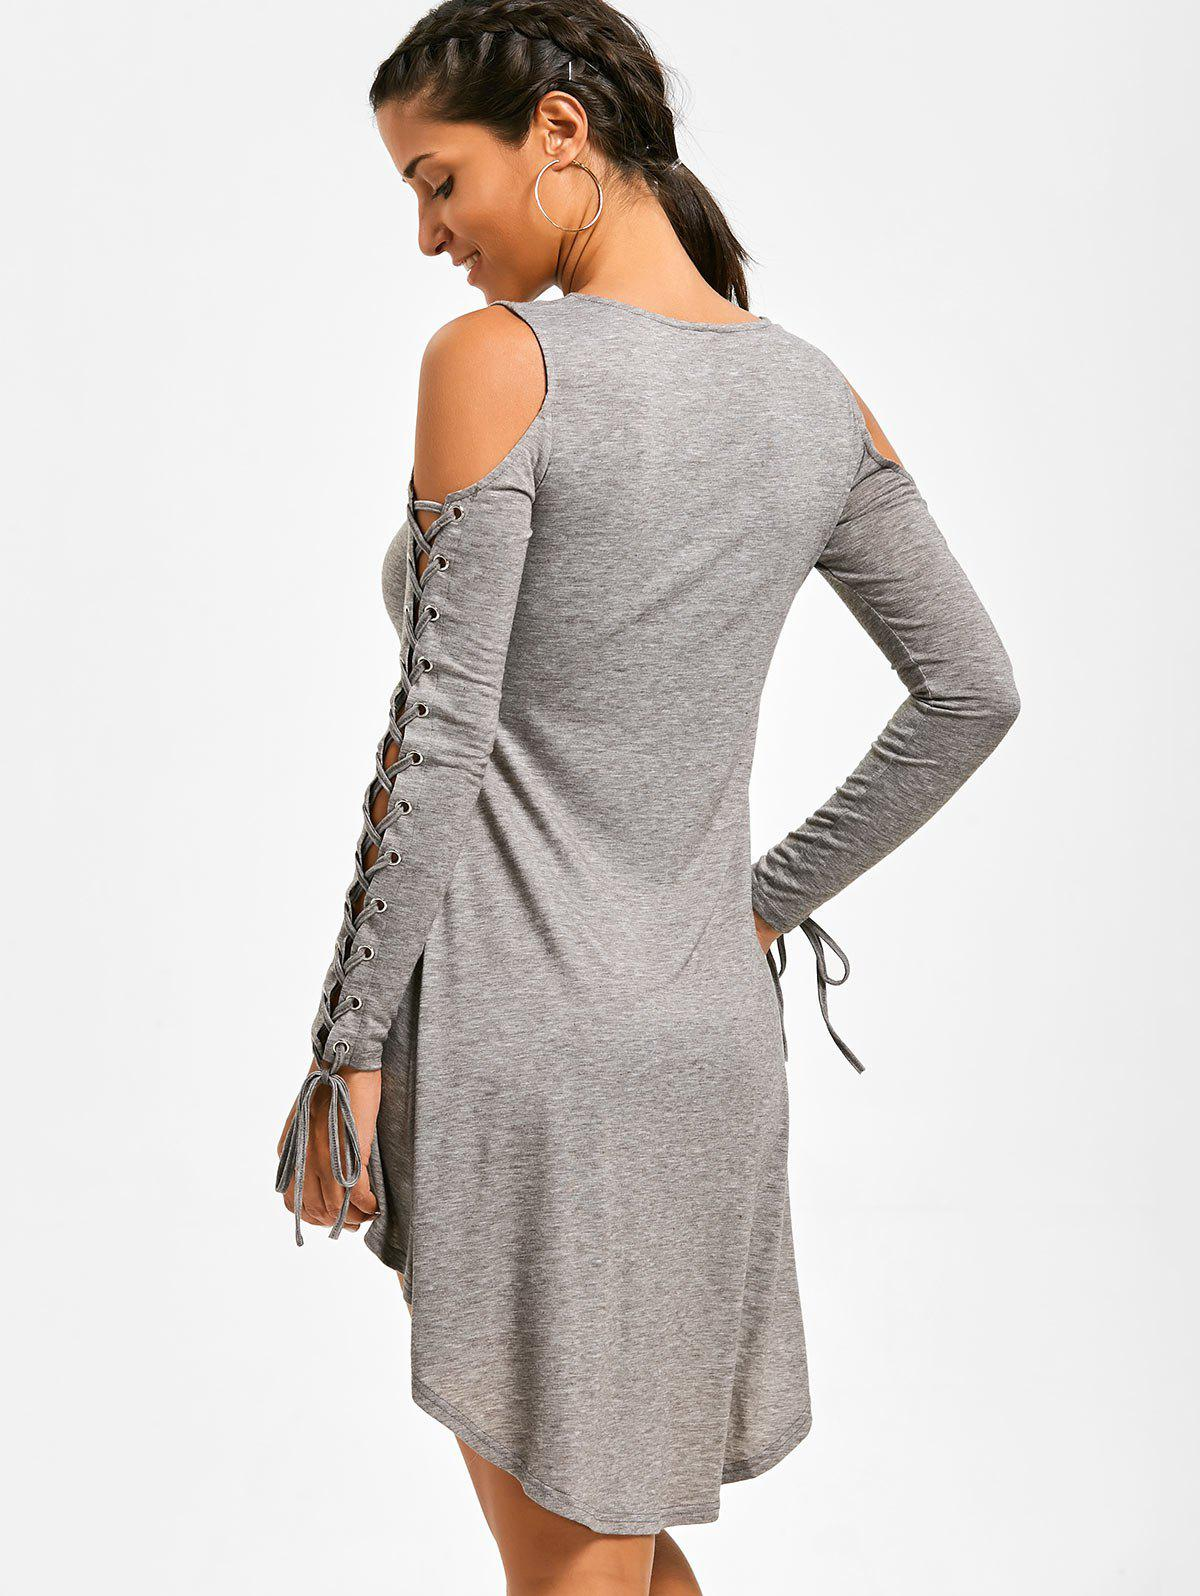 Lace Up Cold Shoulder Tee Dress - HEATHER GRAY XL